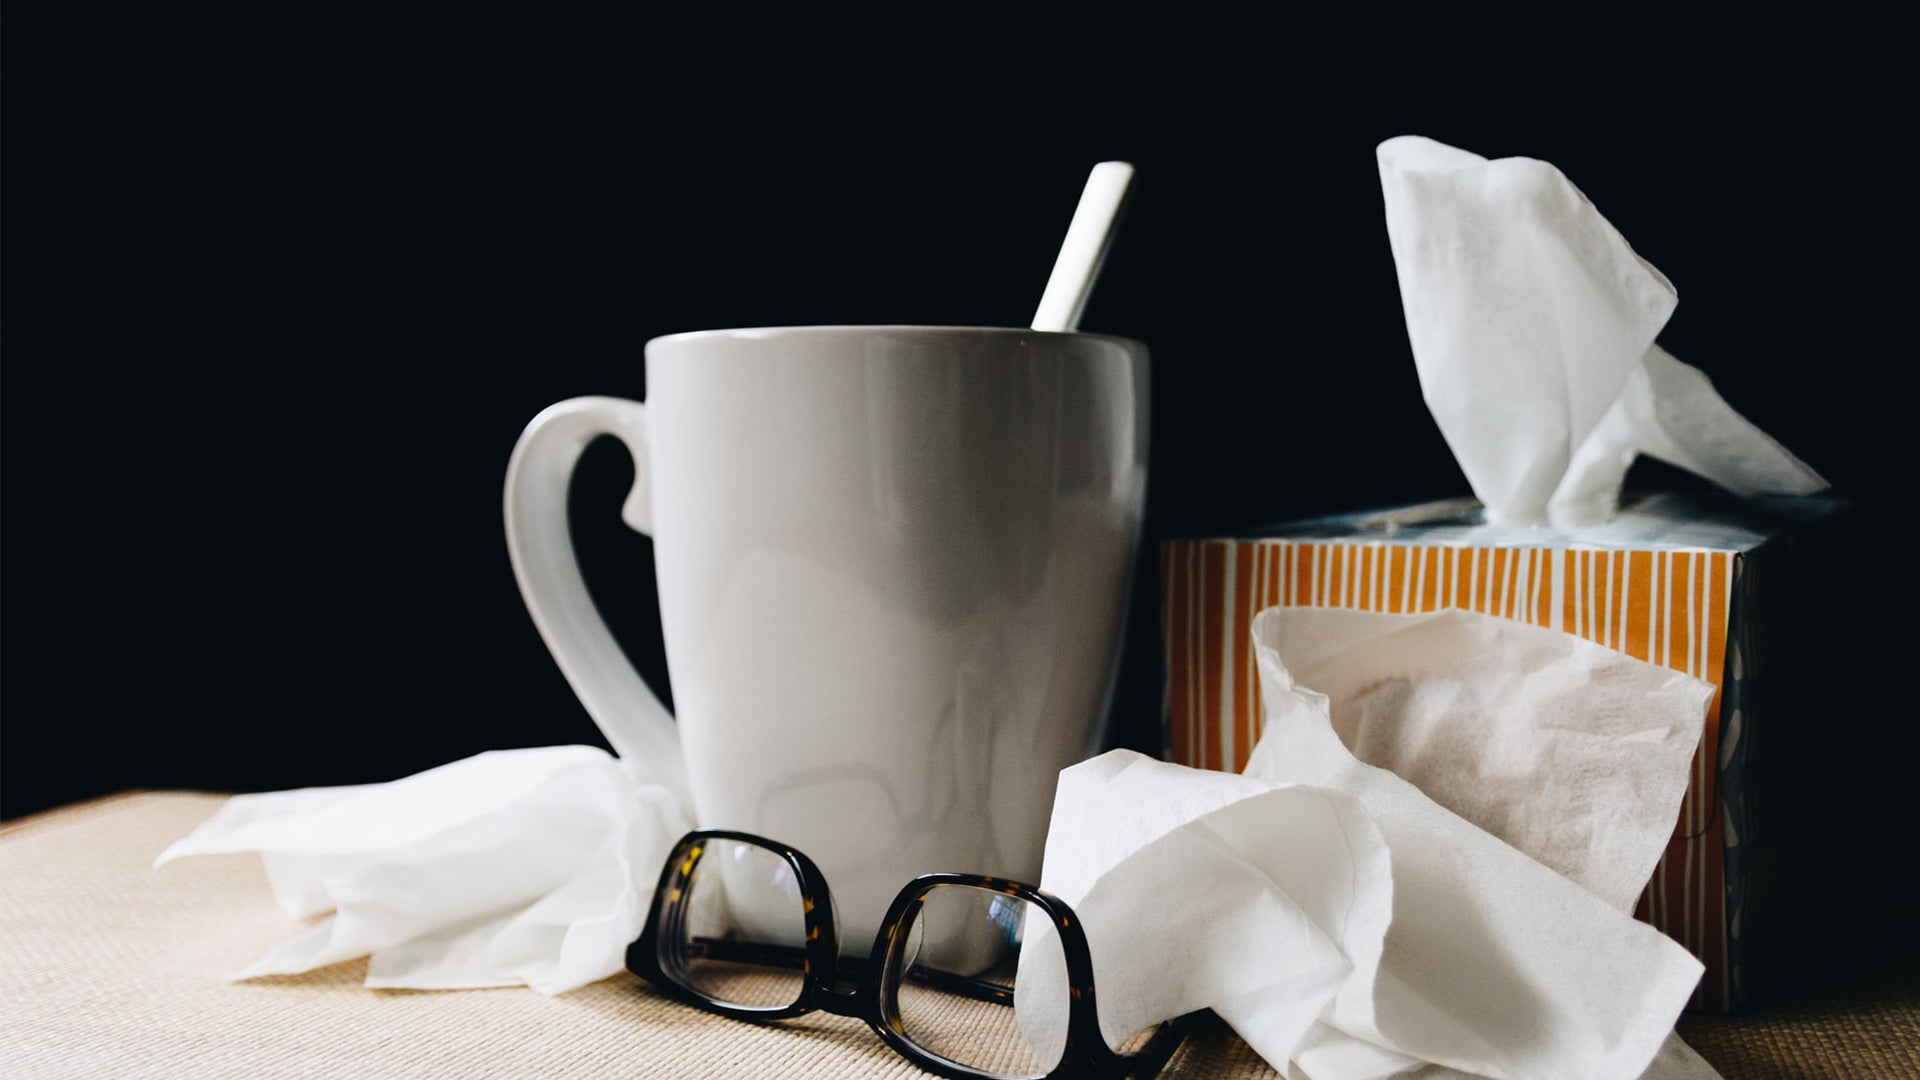 Sick day accessories (image credit: Unsplash.com)